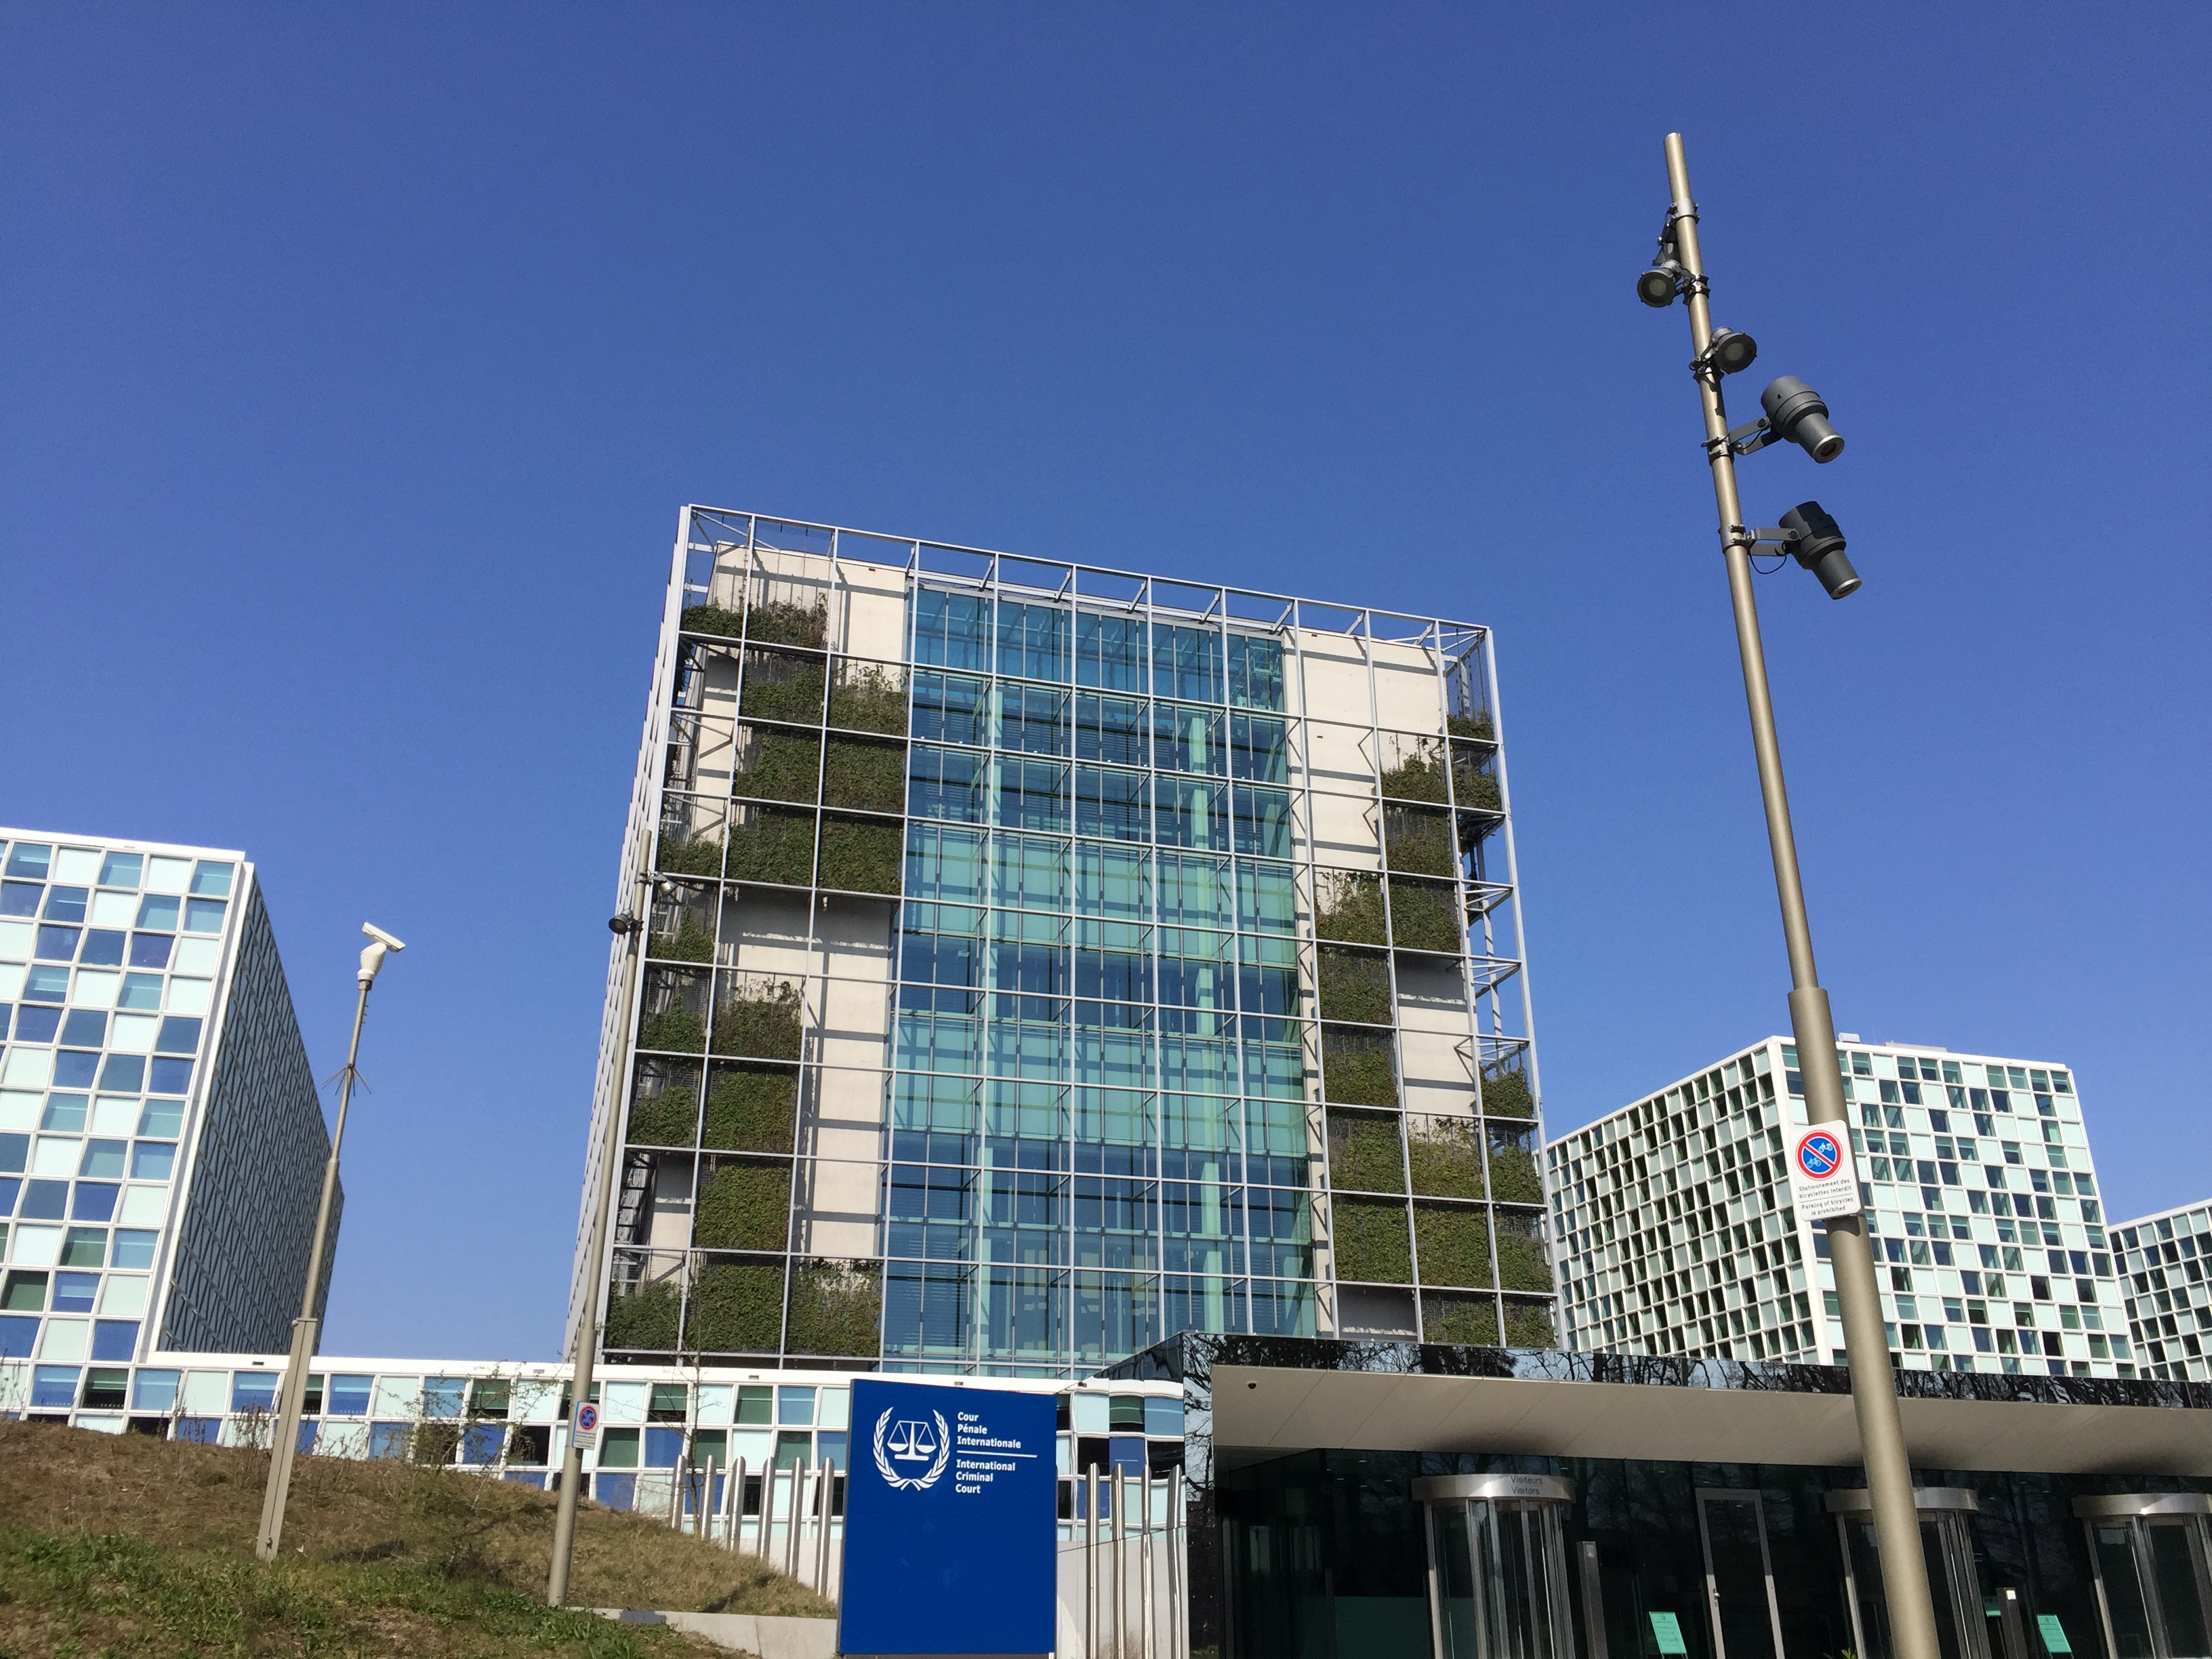 Op-Ed | Supporter or Bystander: What Is the EU's Role at the ICC?